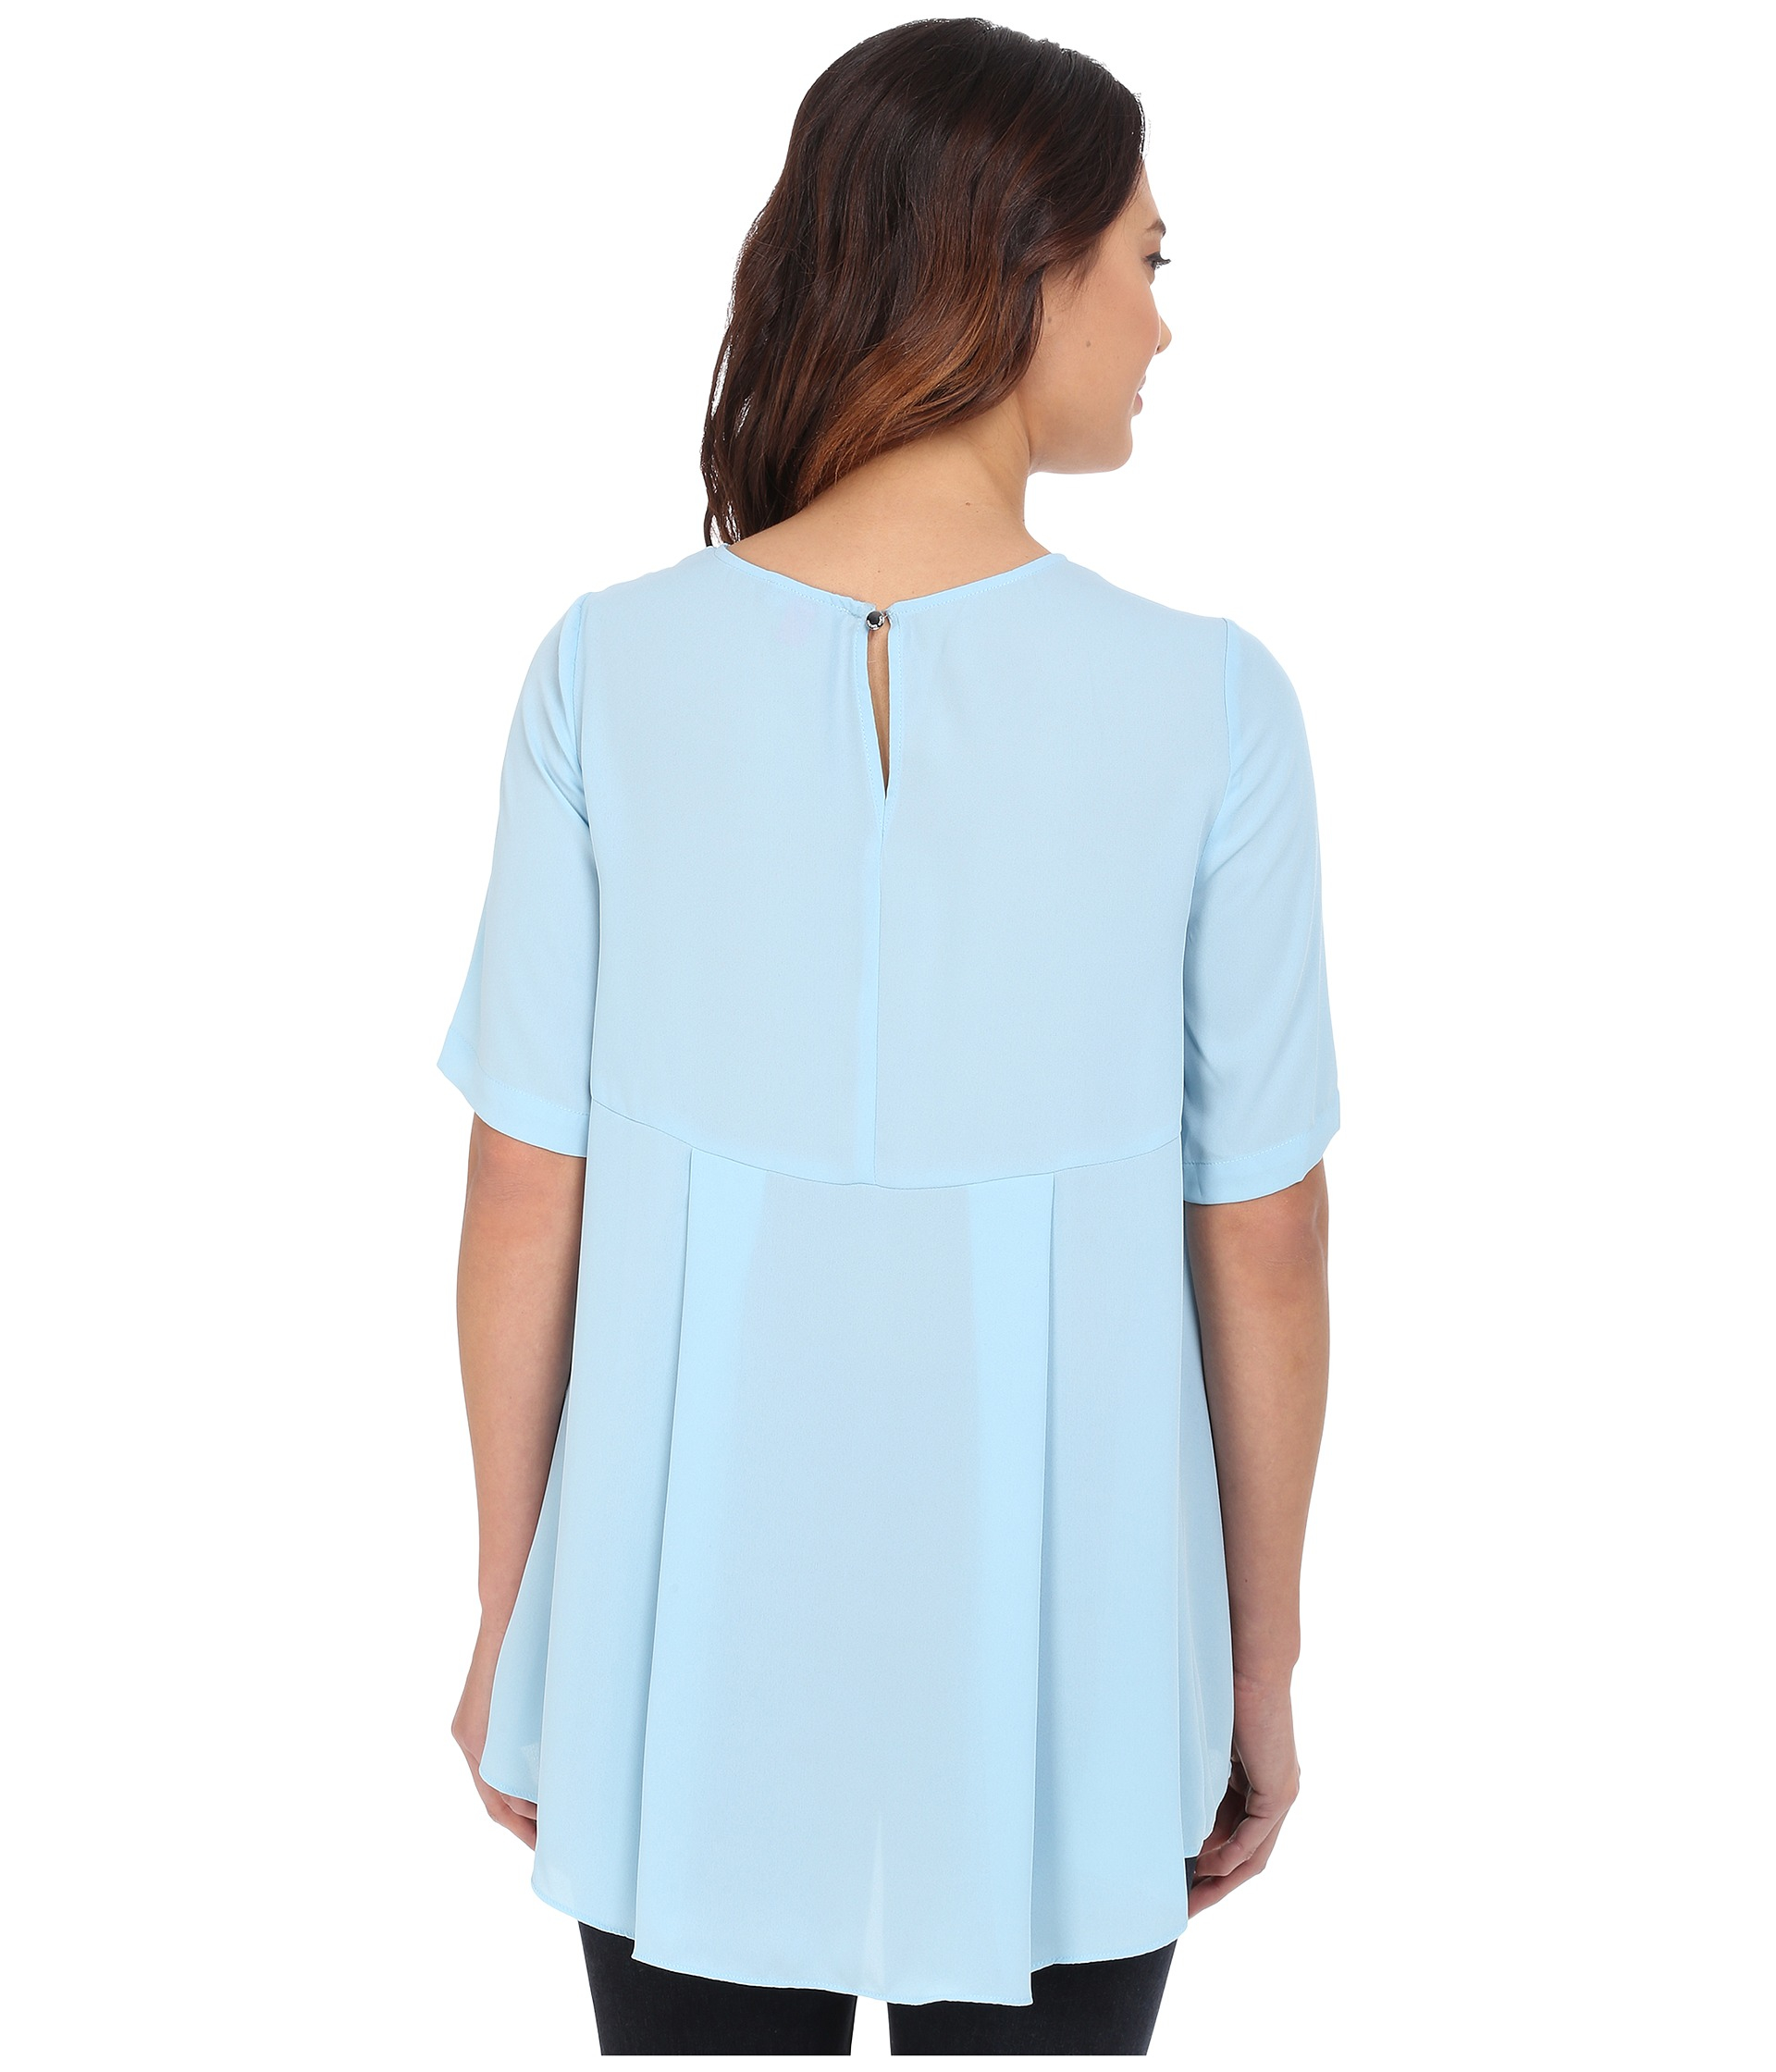 6ba815c4c6928 Lyst - Vince Camuto Elbow Sleeve High-low Hem Blouse in Blue